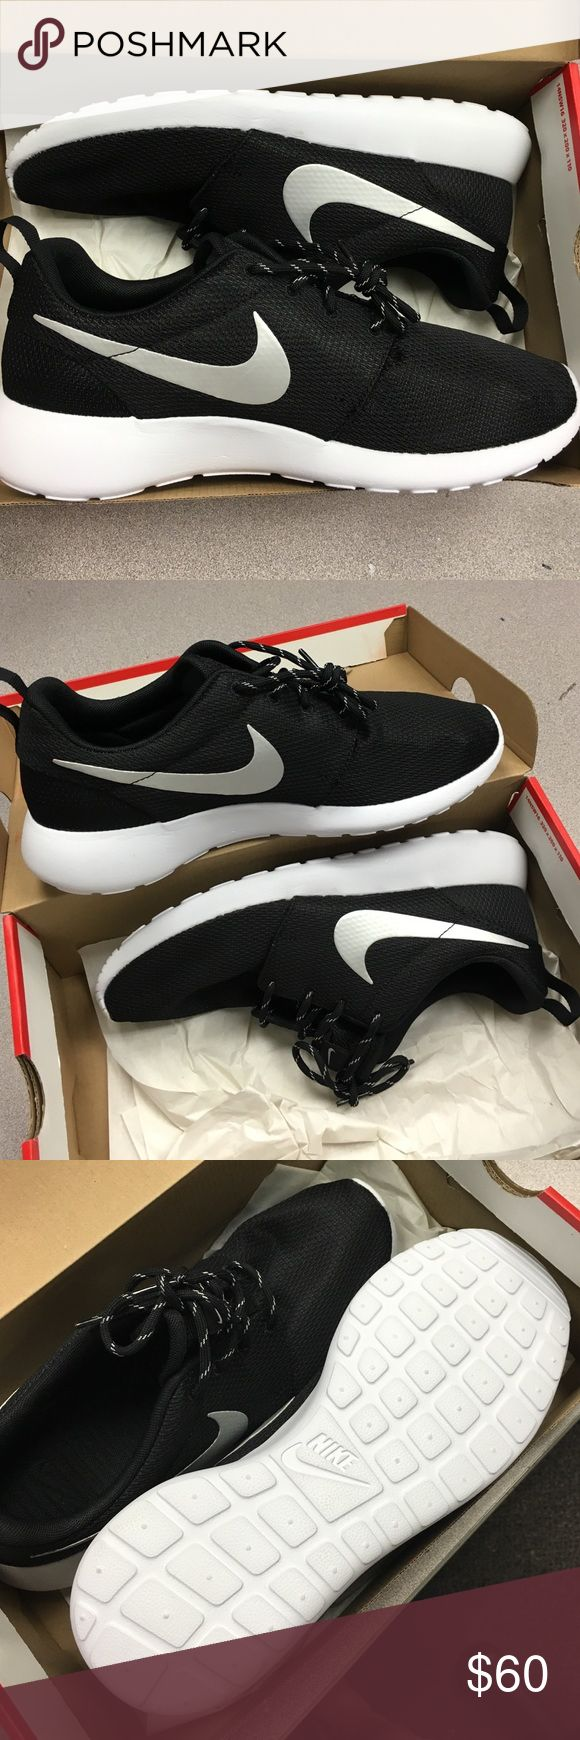 Nike Roshe One Women's Size 10. Black/white/metallic. Completely brand new in original box. Retail for $75 Nike Shoes Sneakers